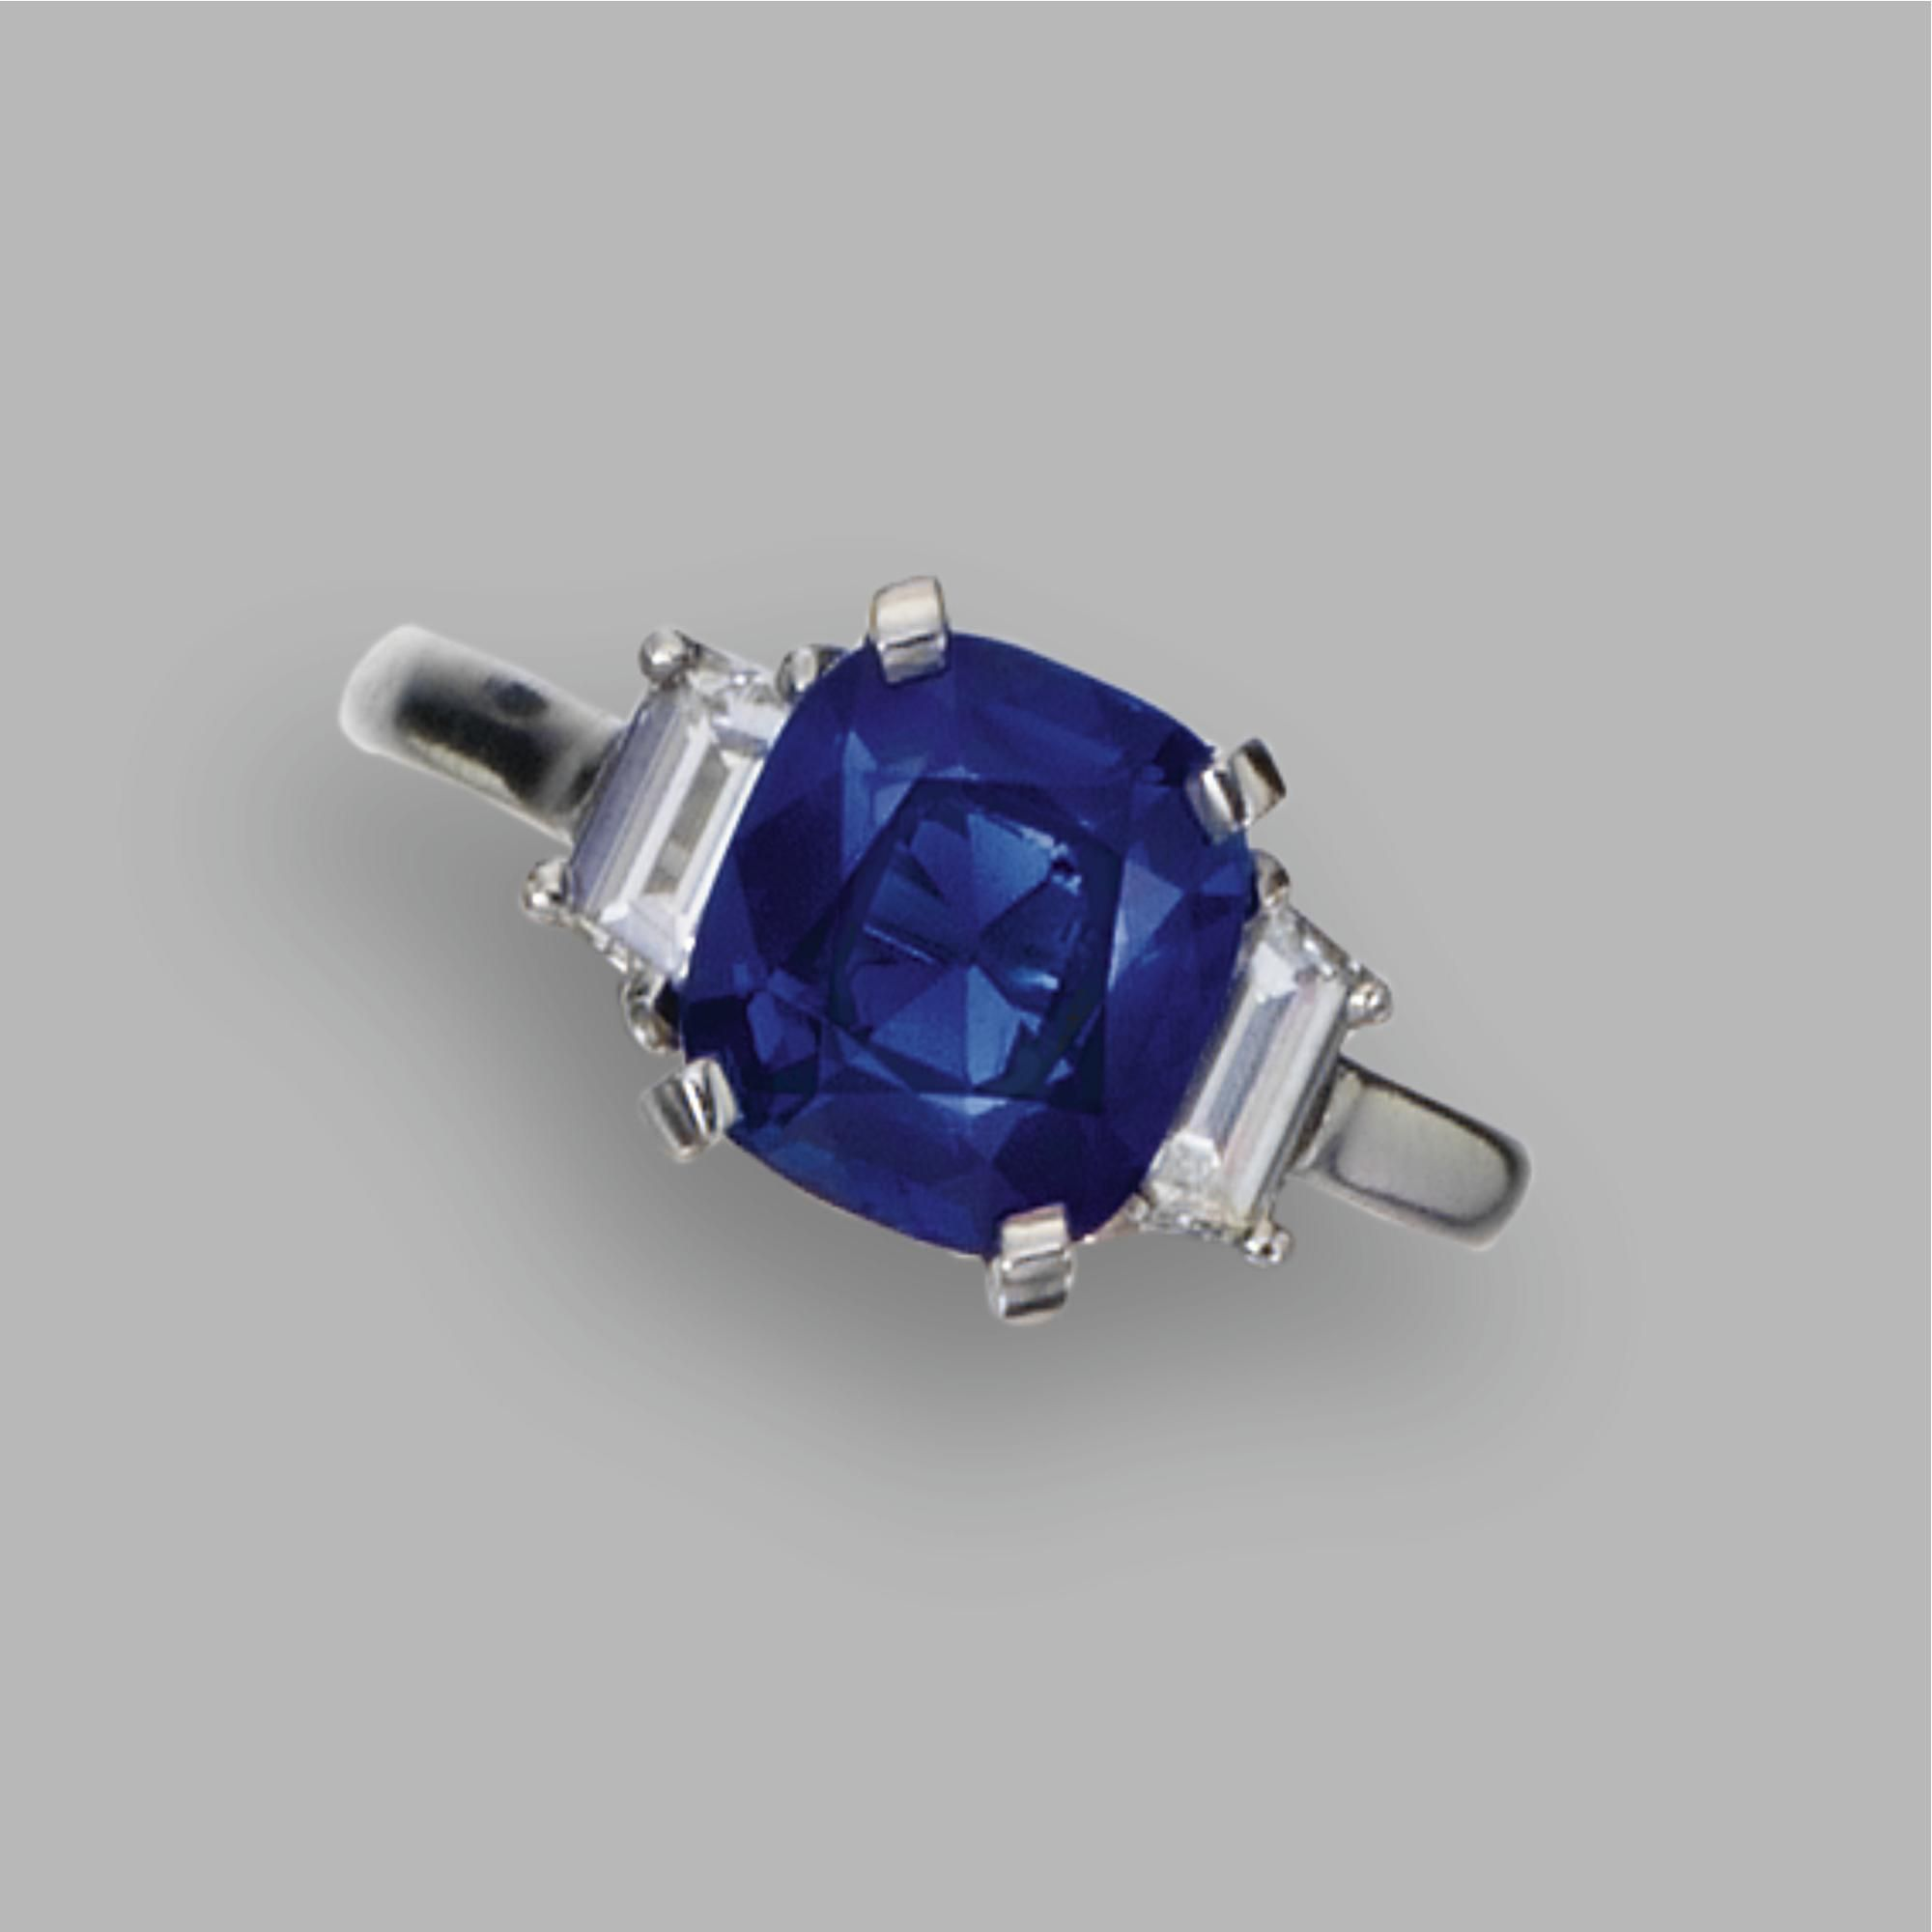 carat total sapphire weight trillion over cut pin cushioncut diamonds with